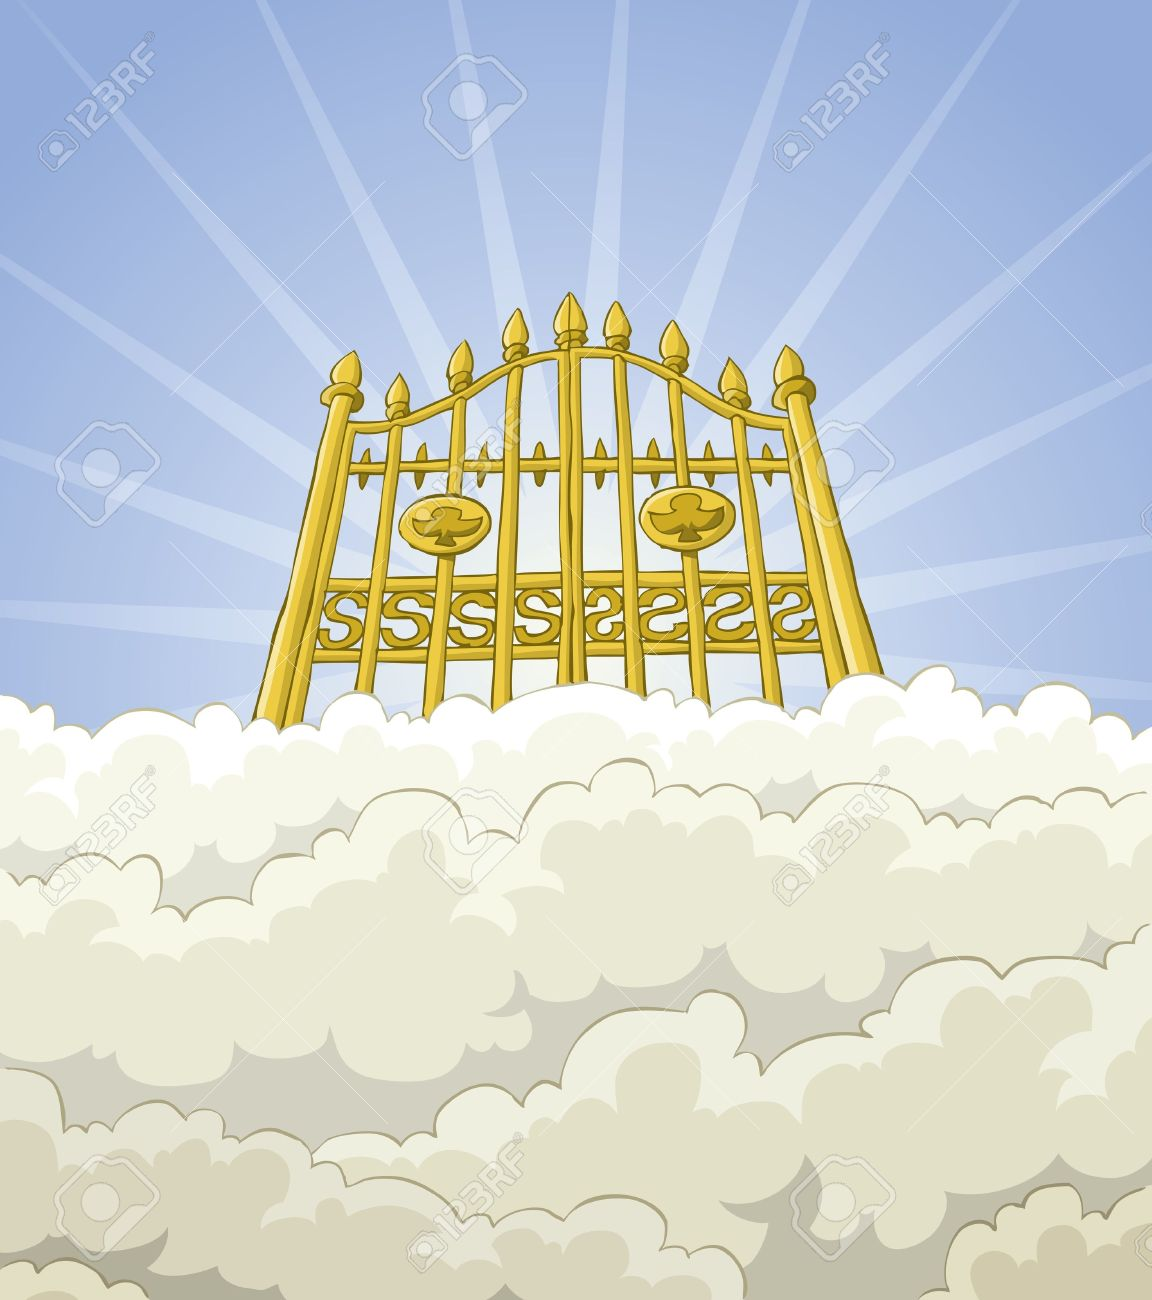 hight resolution of heaven clipart 3